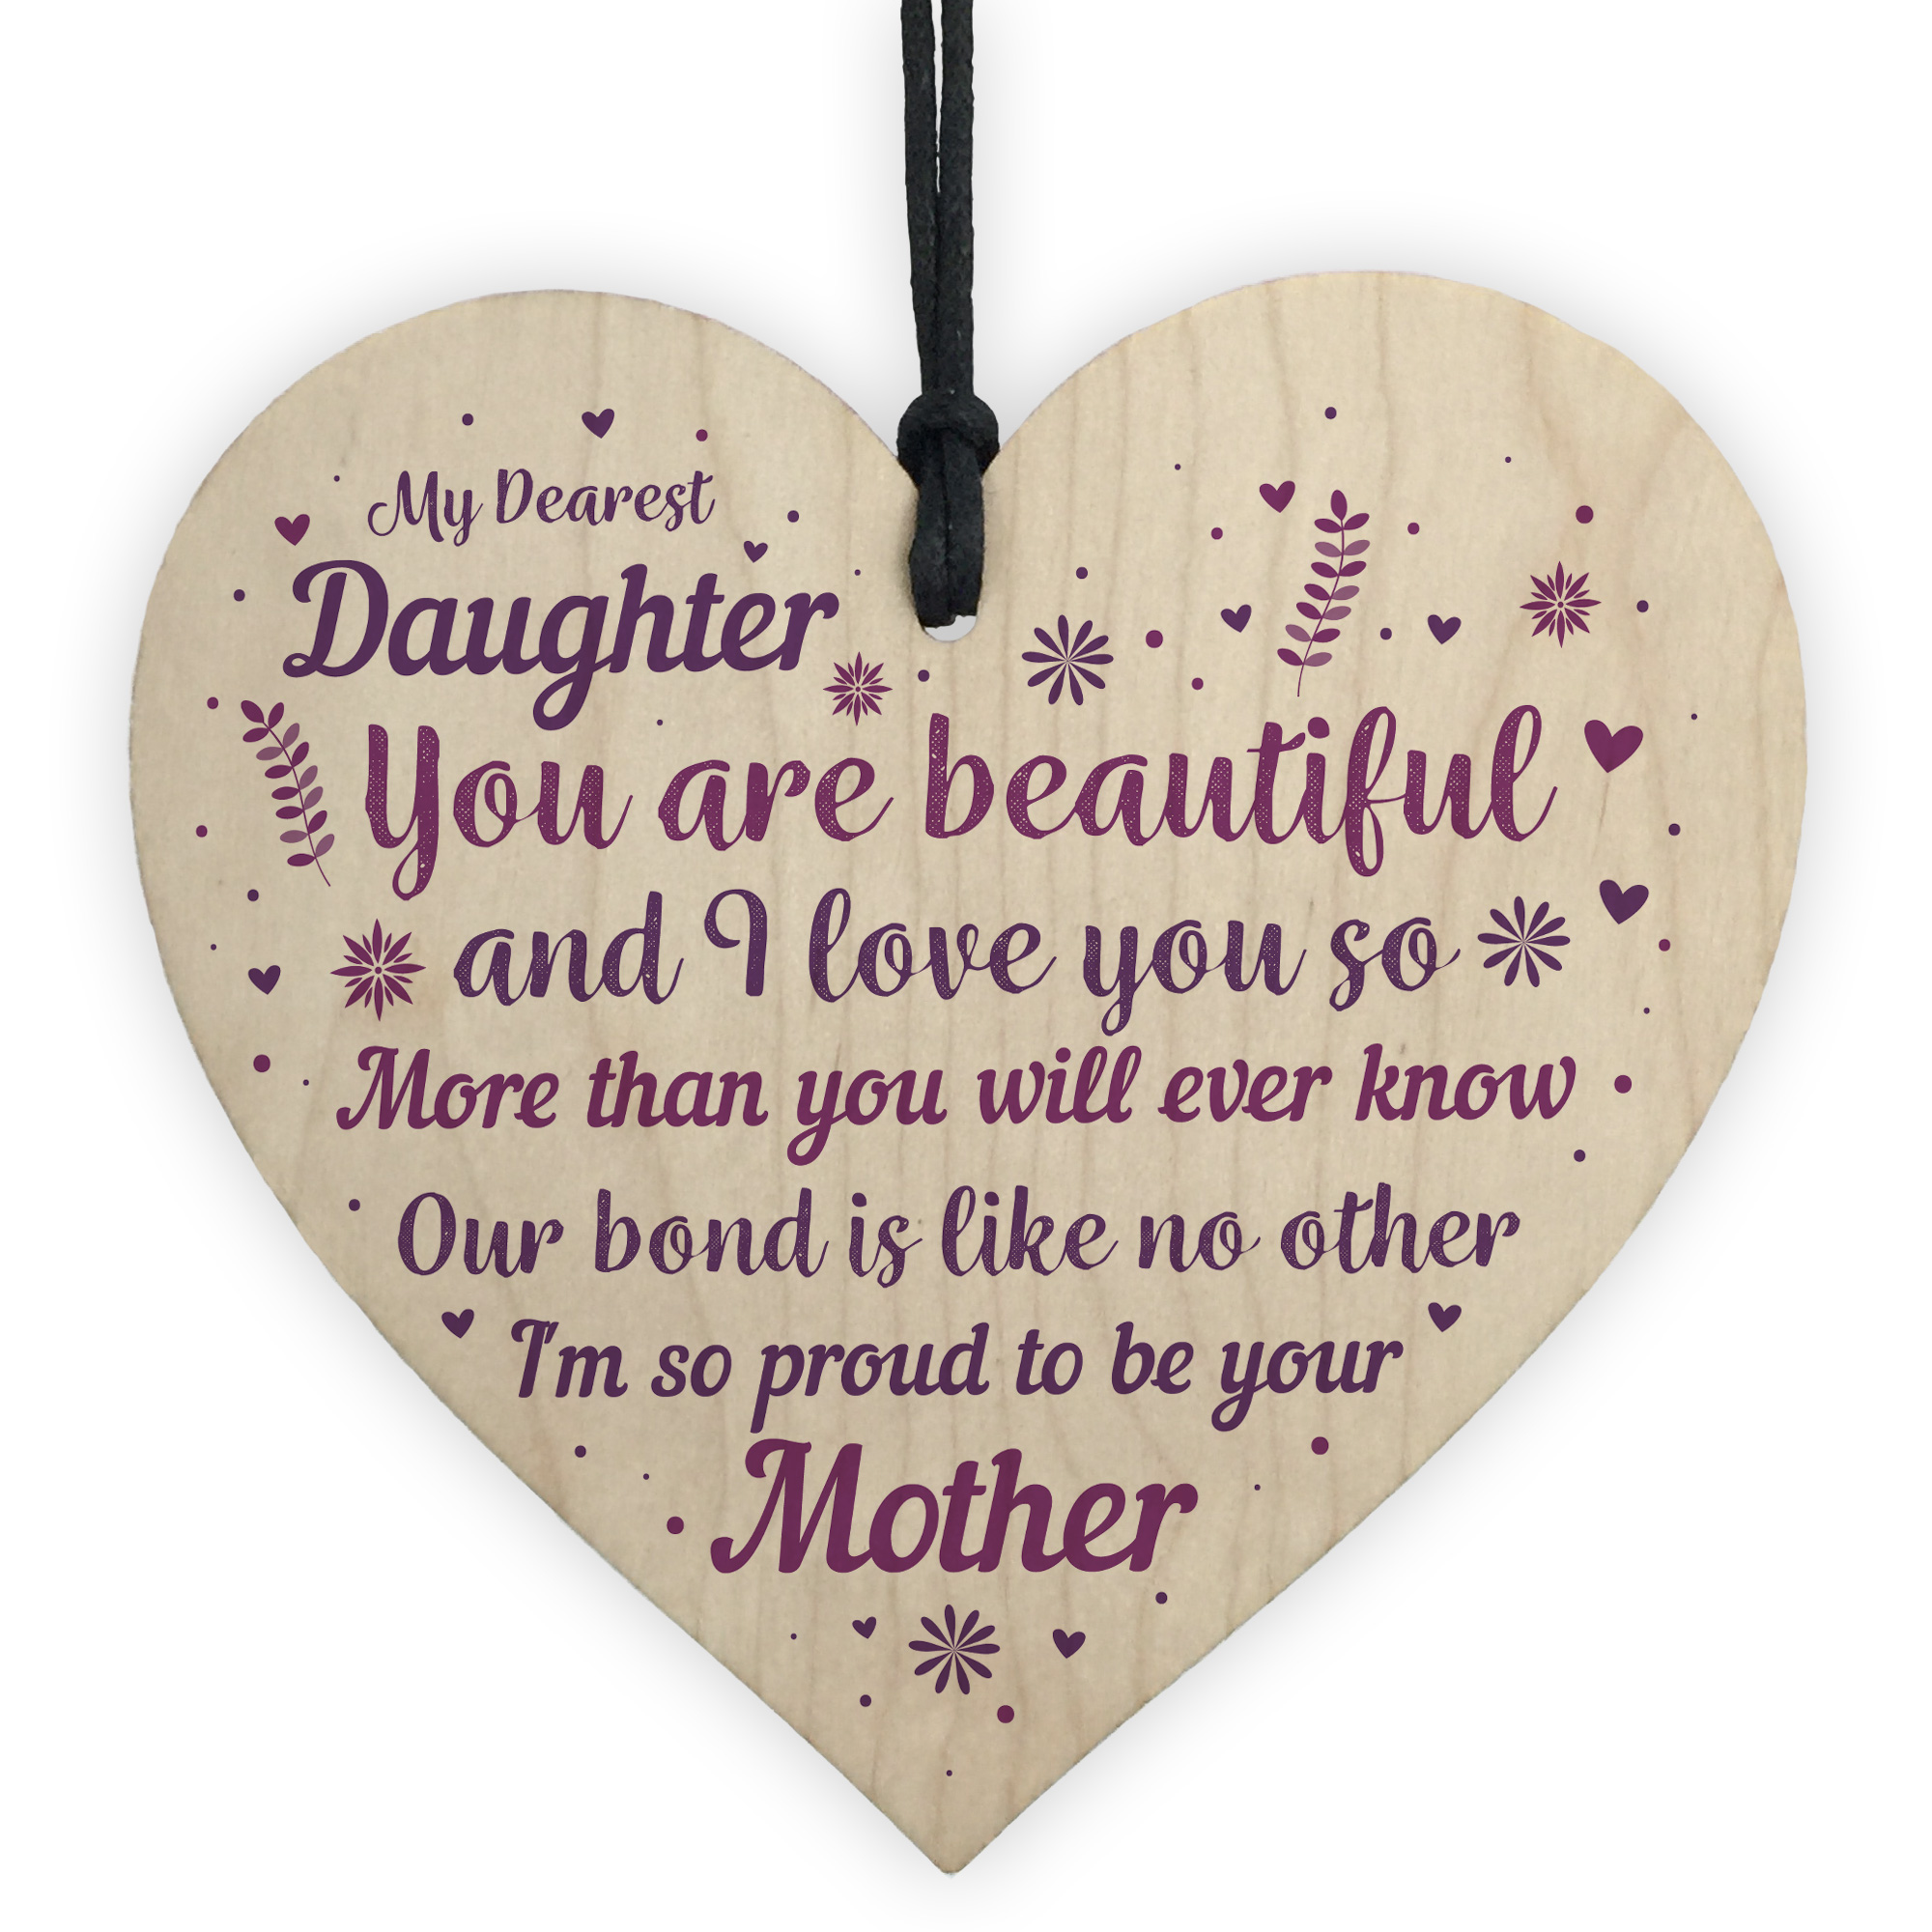 Details About Mother And Daughter Gifts Wood Heart Plaque Christmas Birthday Gift For